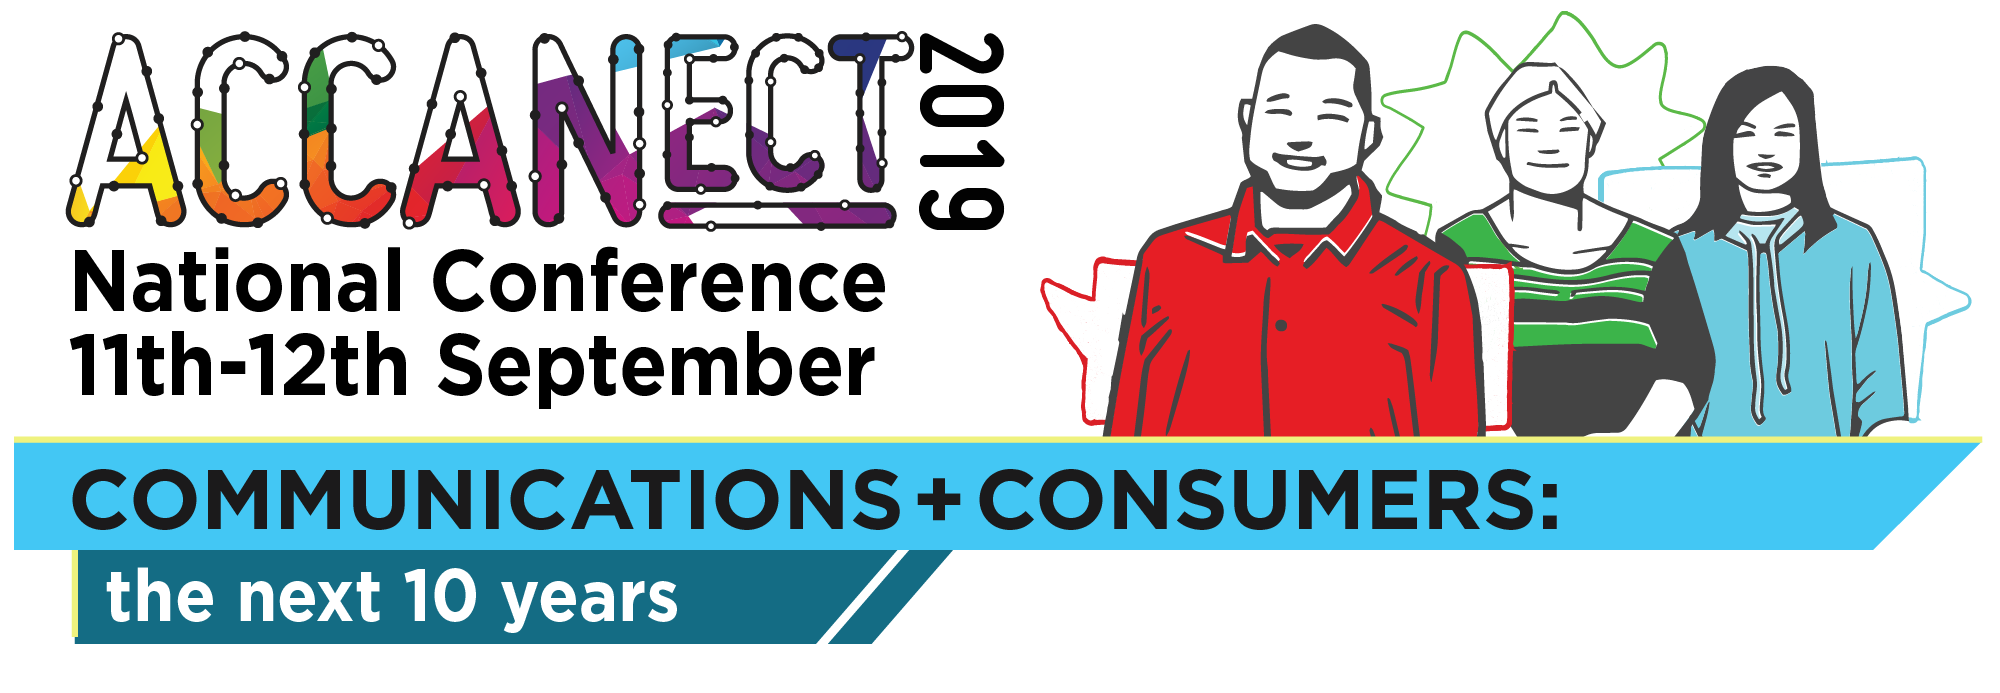 ACCANect 2019 held 11th & 12th September. Communications + Consumers: the next ten years